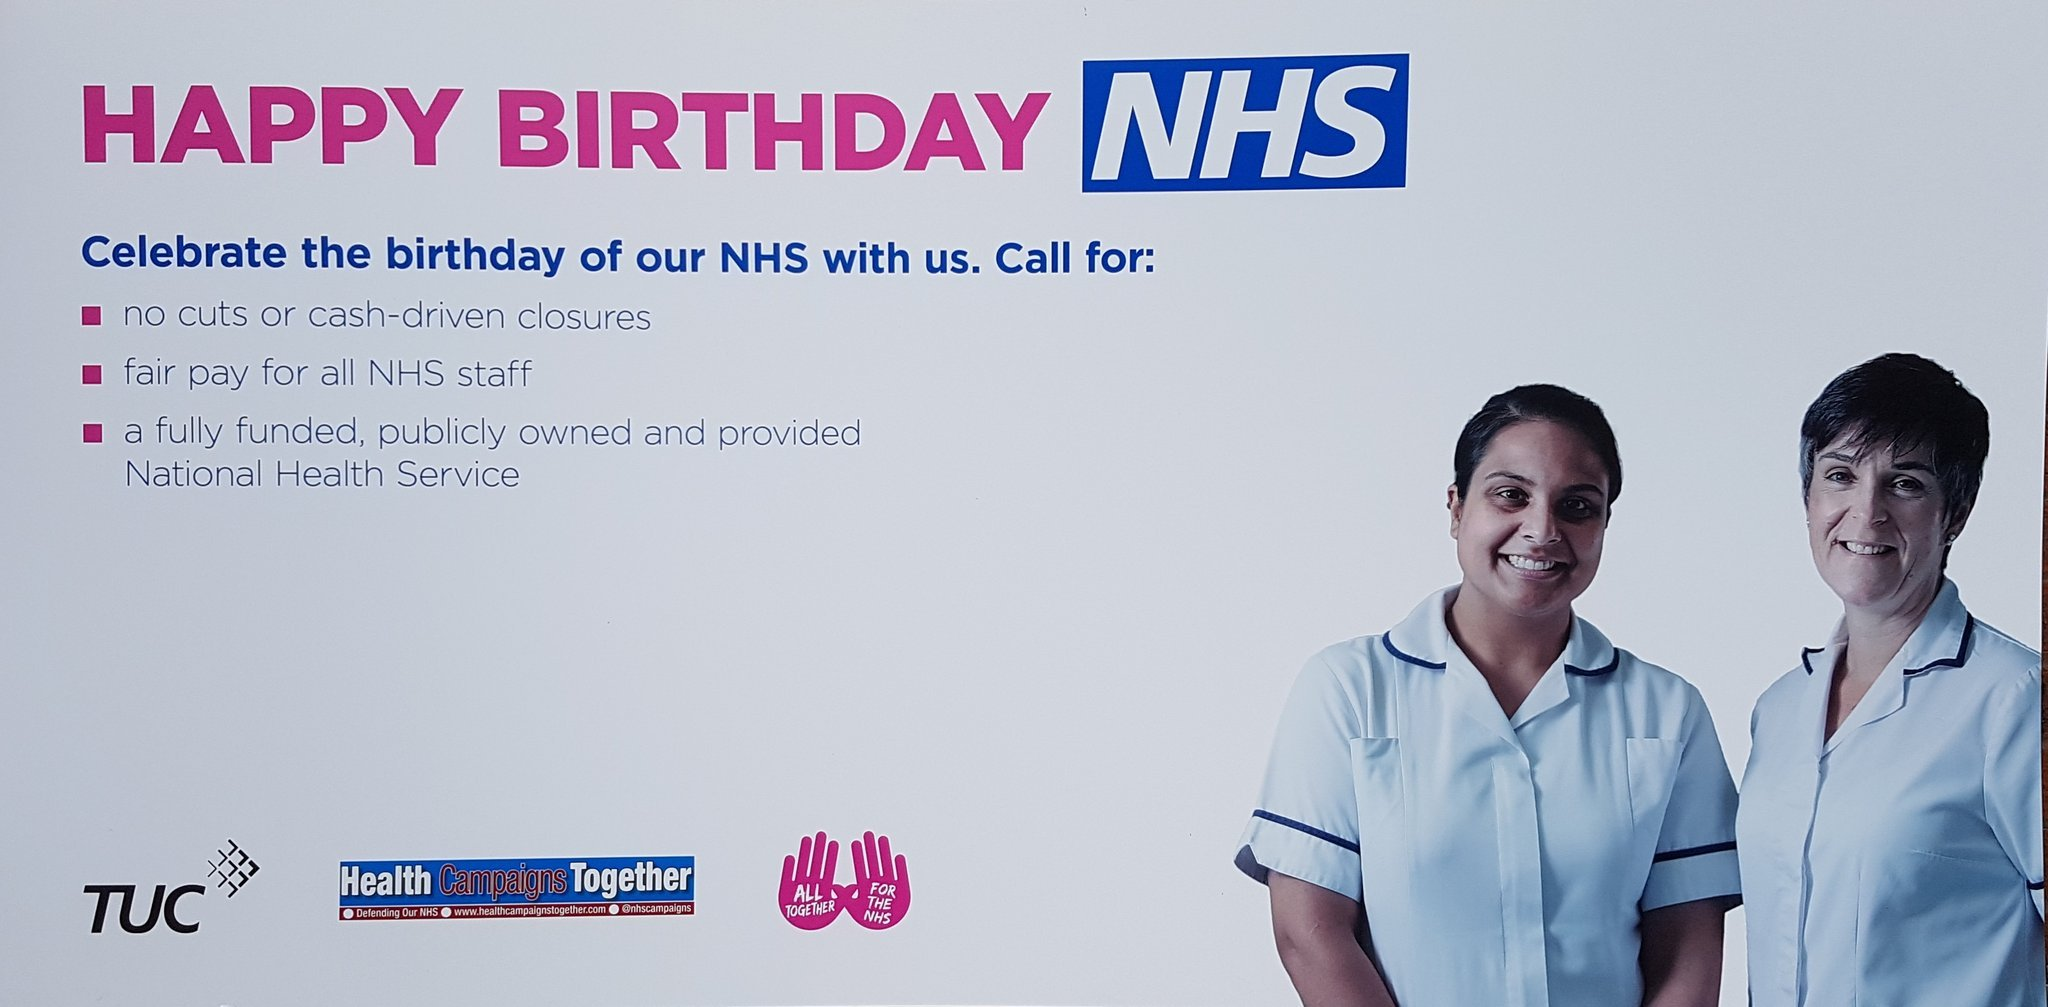 The 'birthday card' that campaigners plan to bring to the party on Wednesday.